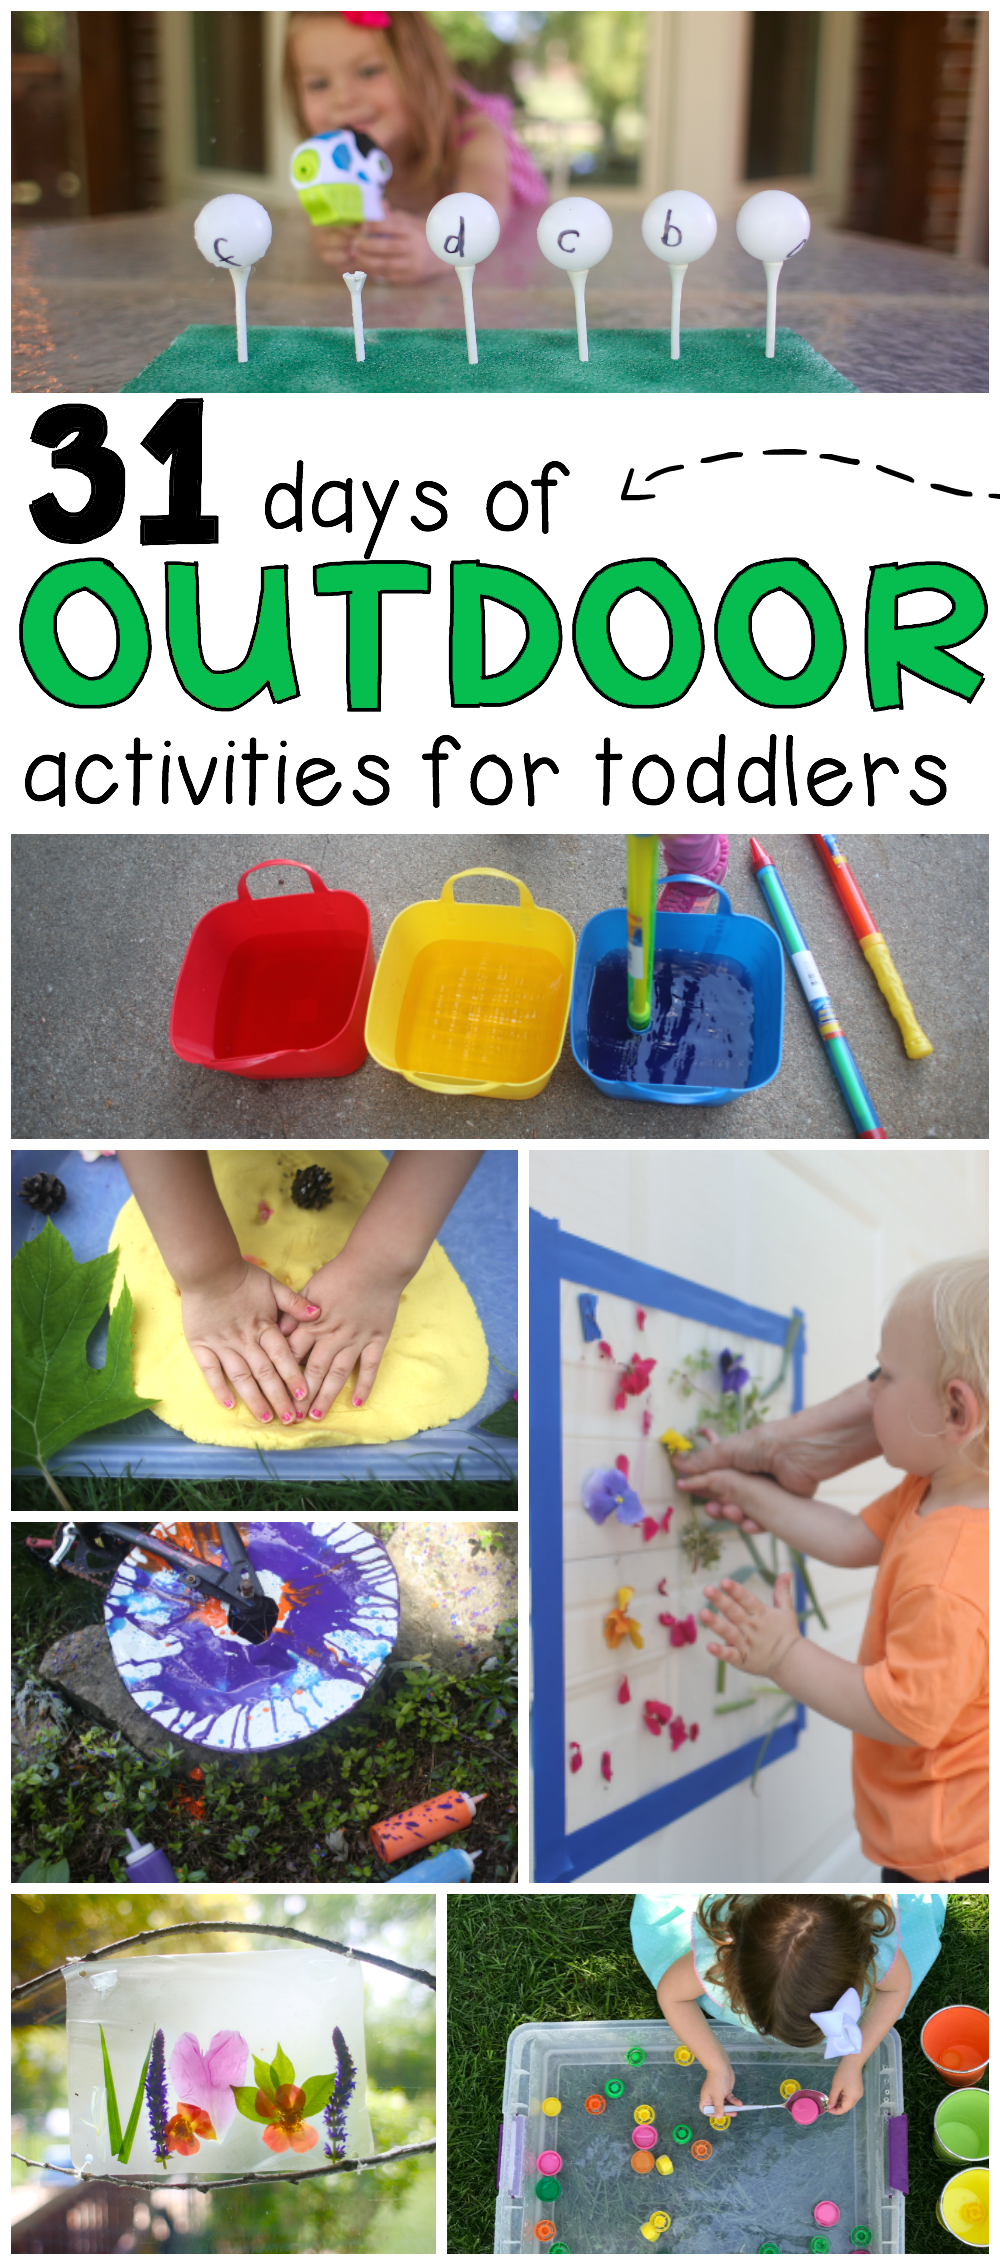 31 Days Of Outdoor Activities For Toddlers I Can My Child